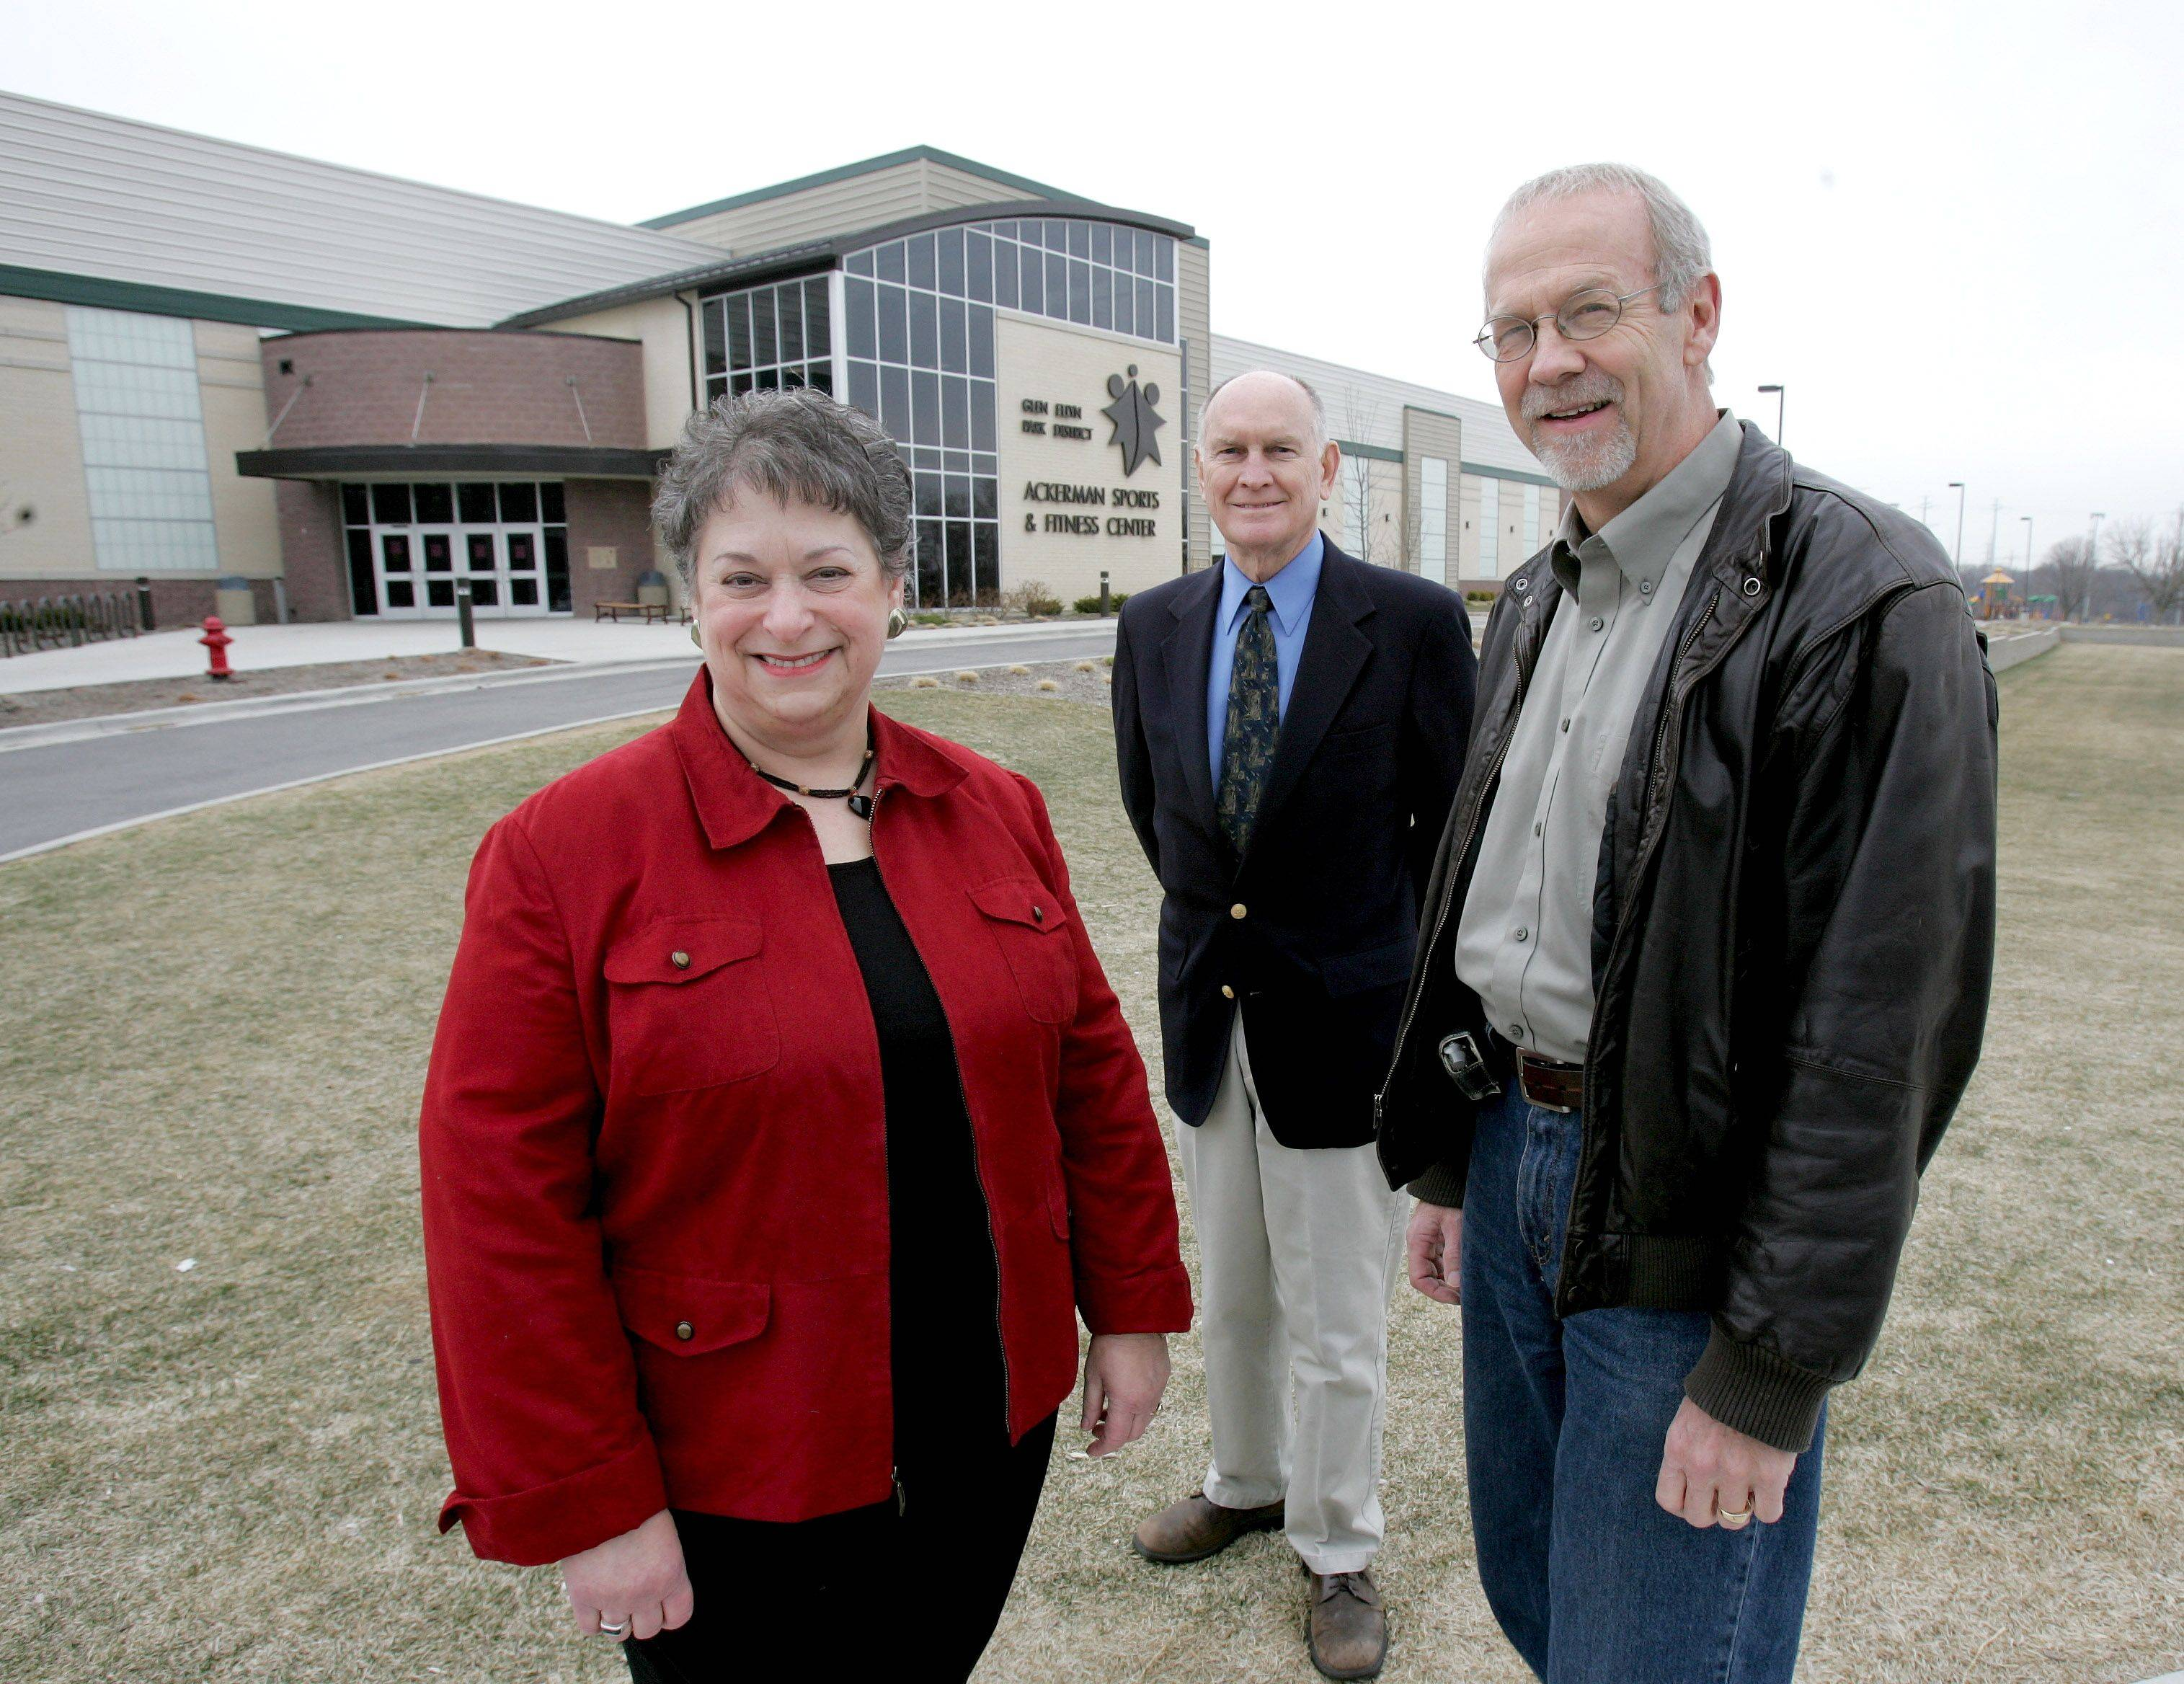 Kathy Cornell, Richard Dunn and Gary Mayo were elected to the Glen Ellyn Park District board as a slate that emphasized better financial management and increased transparency in government. They were critical of added costs to the district's Ackerman Sports and Fitness Center.